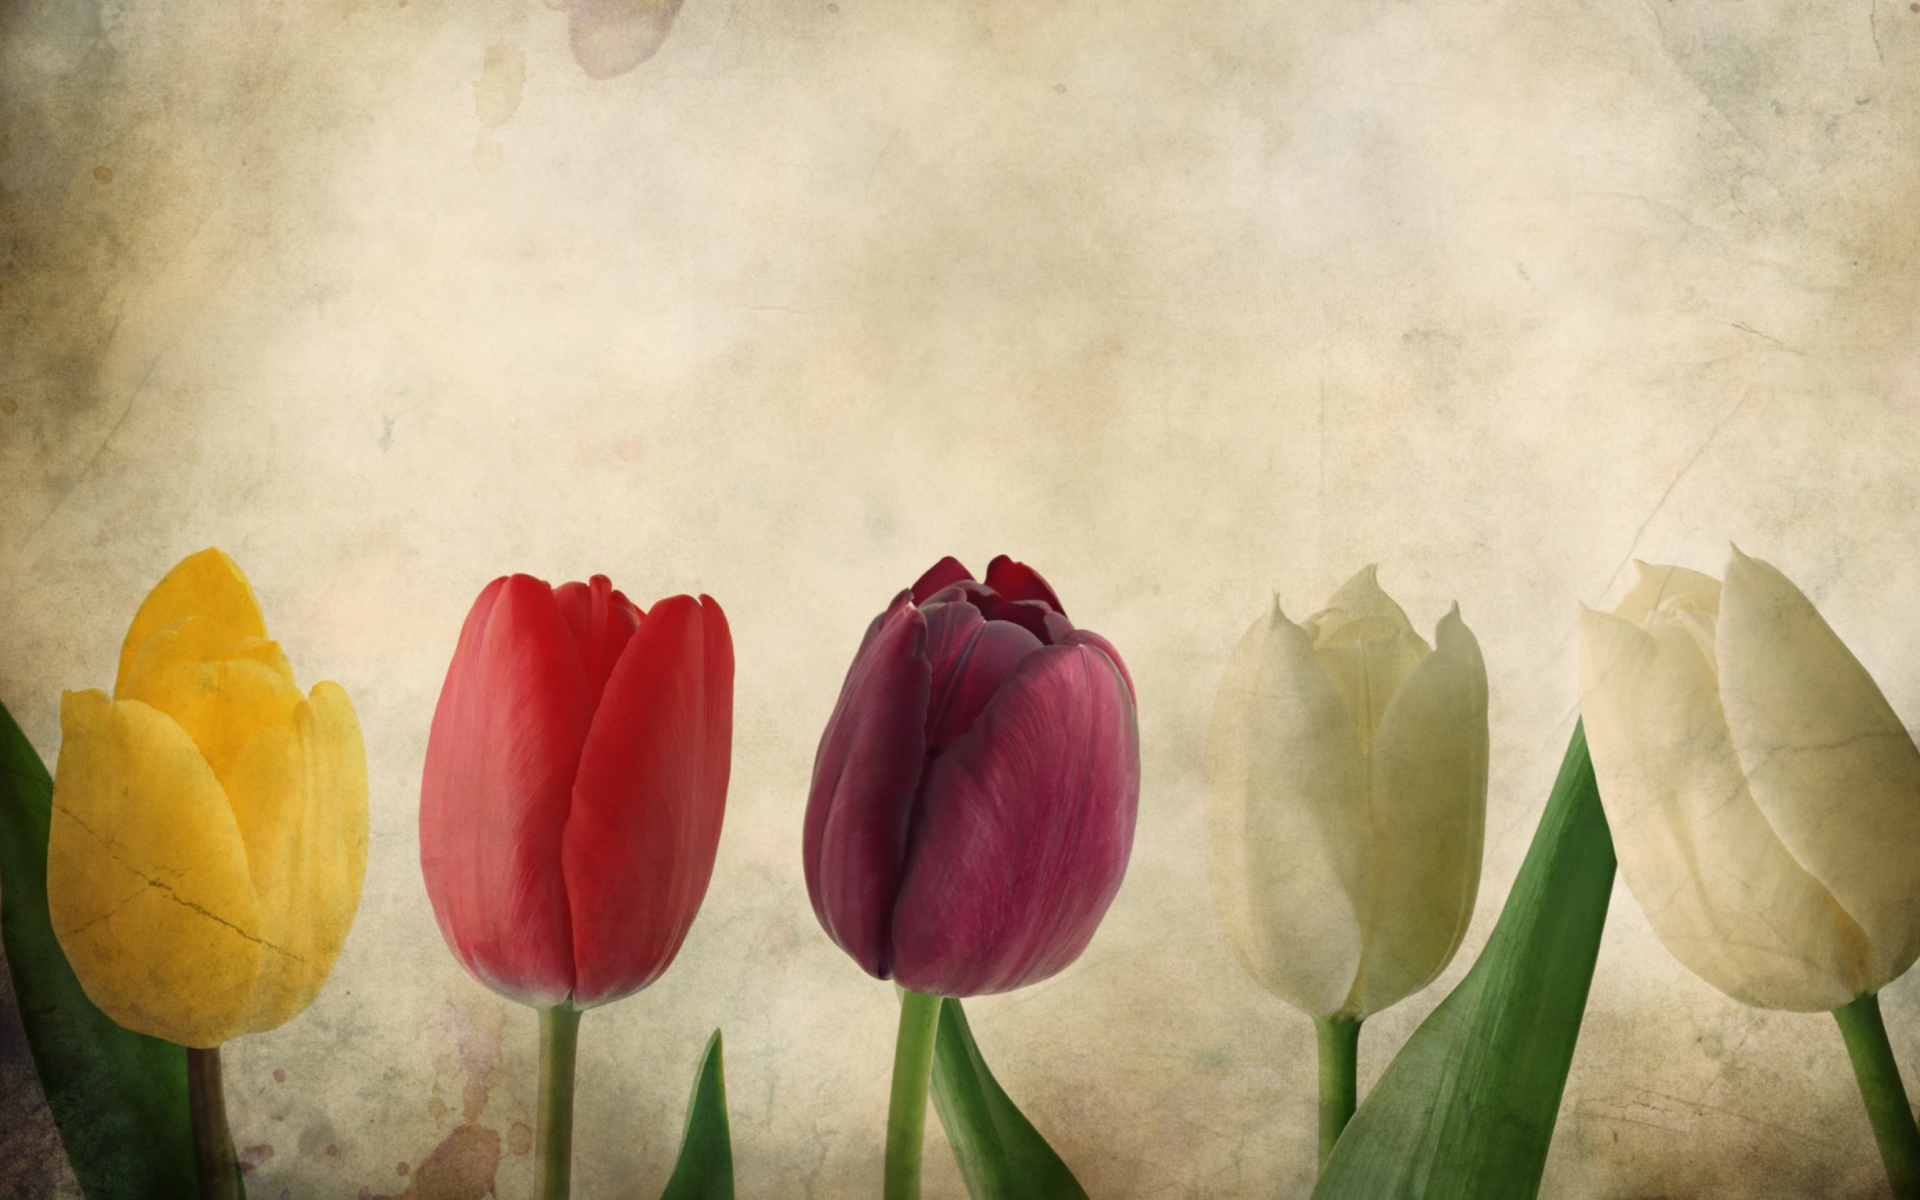 Street Racing Cars Wallpaper With Girls Tulips Vintage Wallpaper For Widescreen Desktop Pc